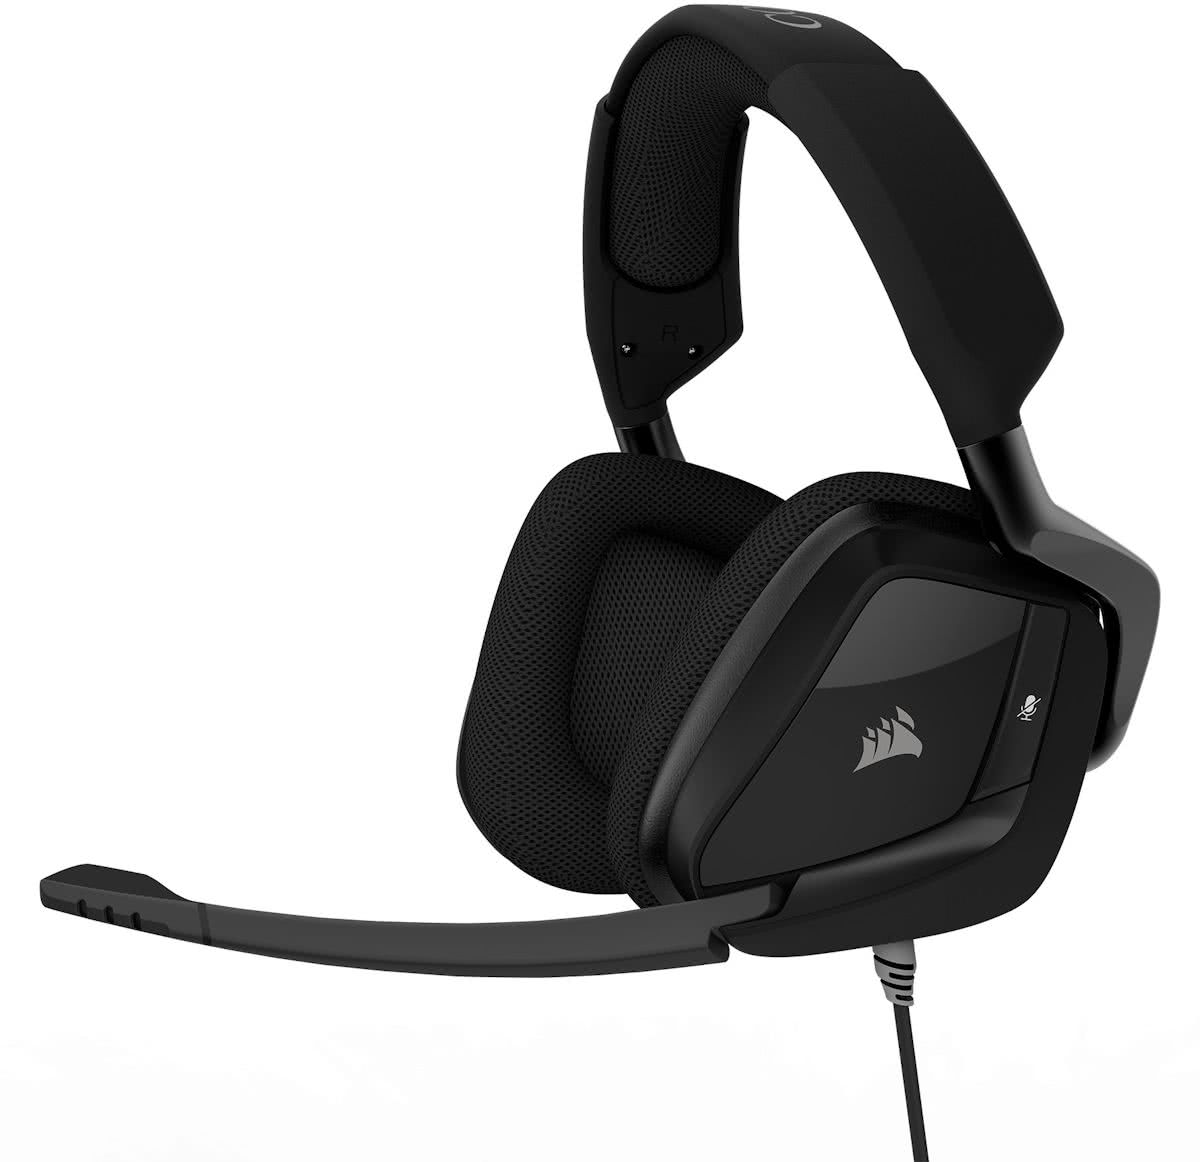 Void Pro Surround - Premium Gaming Headset - Carbon Black - PC + PS4 + Switch + Xbox One